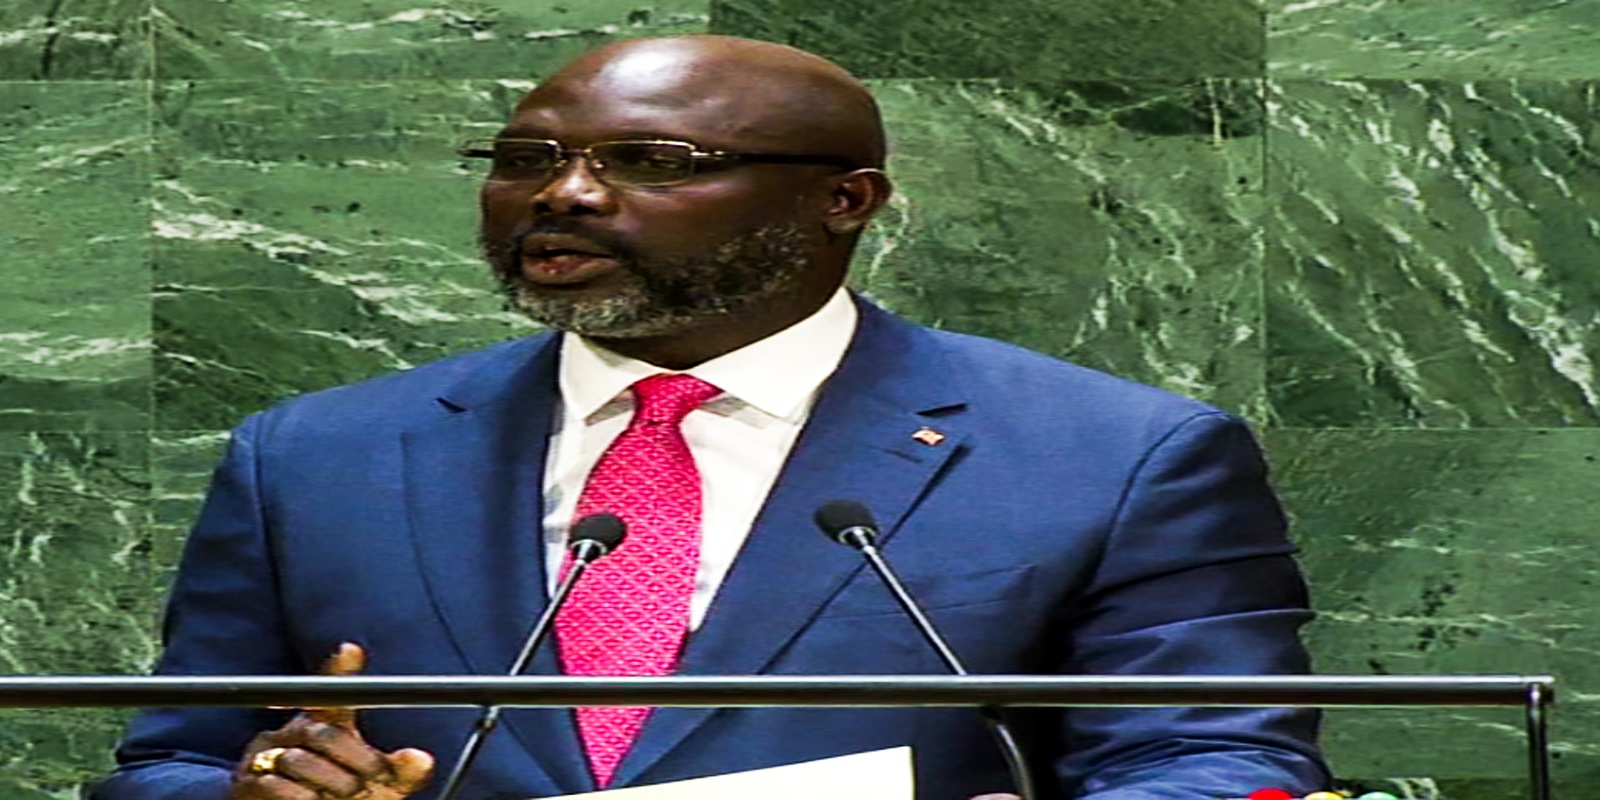 His Excellency Dr. George Manneh addresses the 74th Session of the United Nations General Assembly